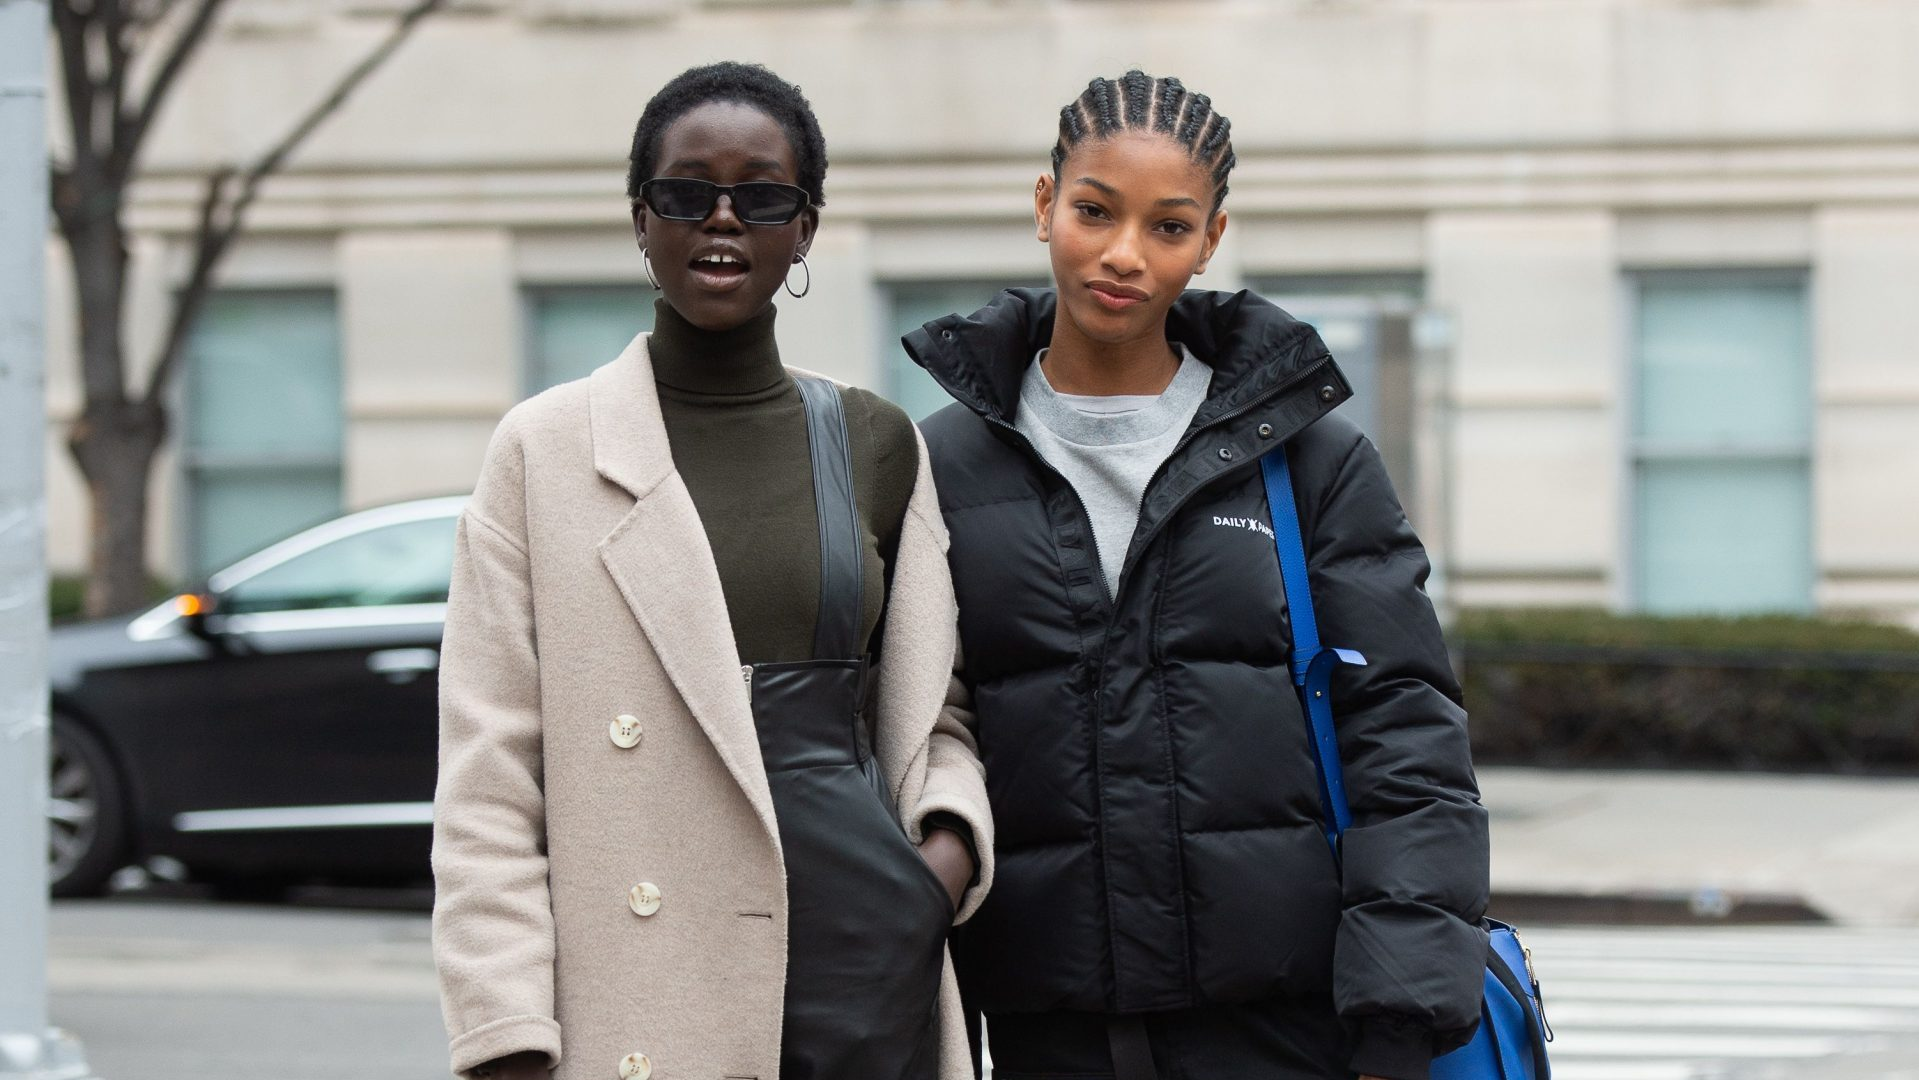 Women of Color Are Stealing the Street Style Show During Fashion Month